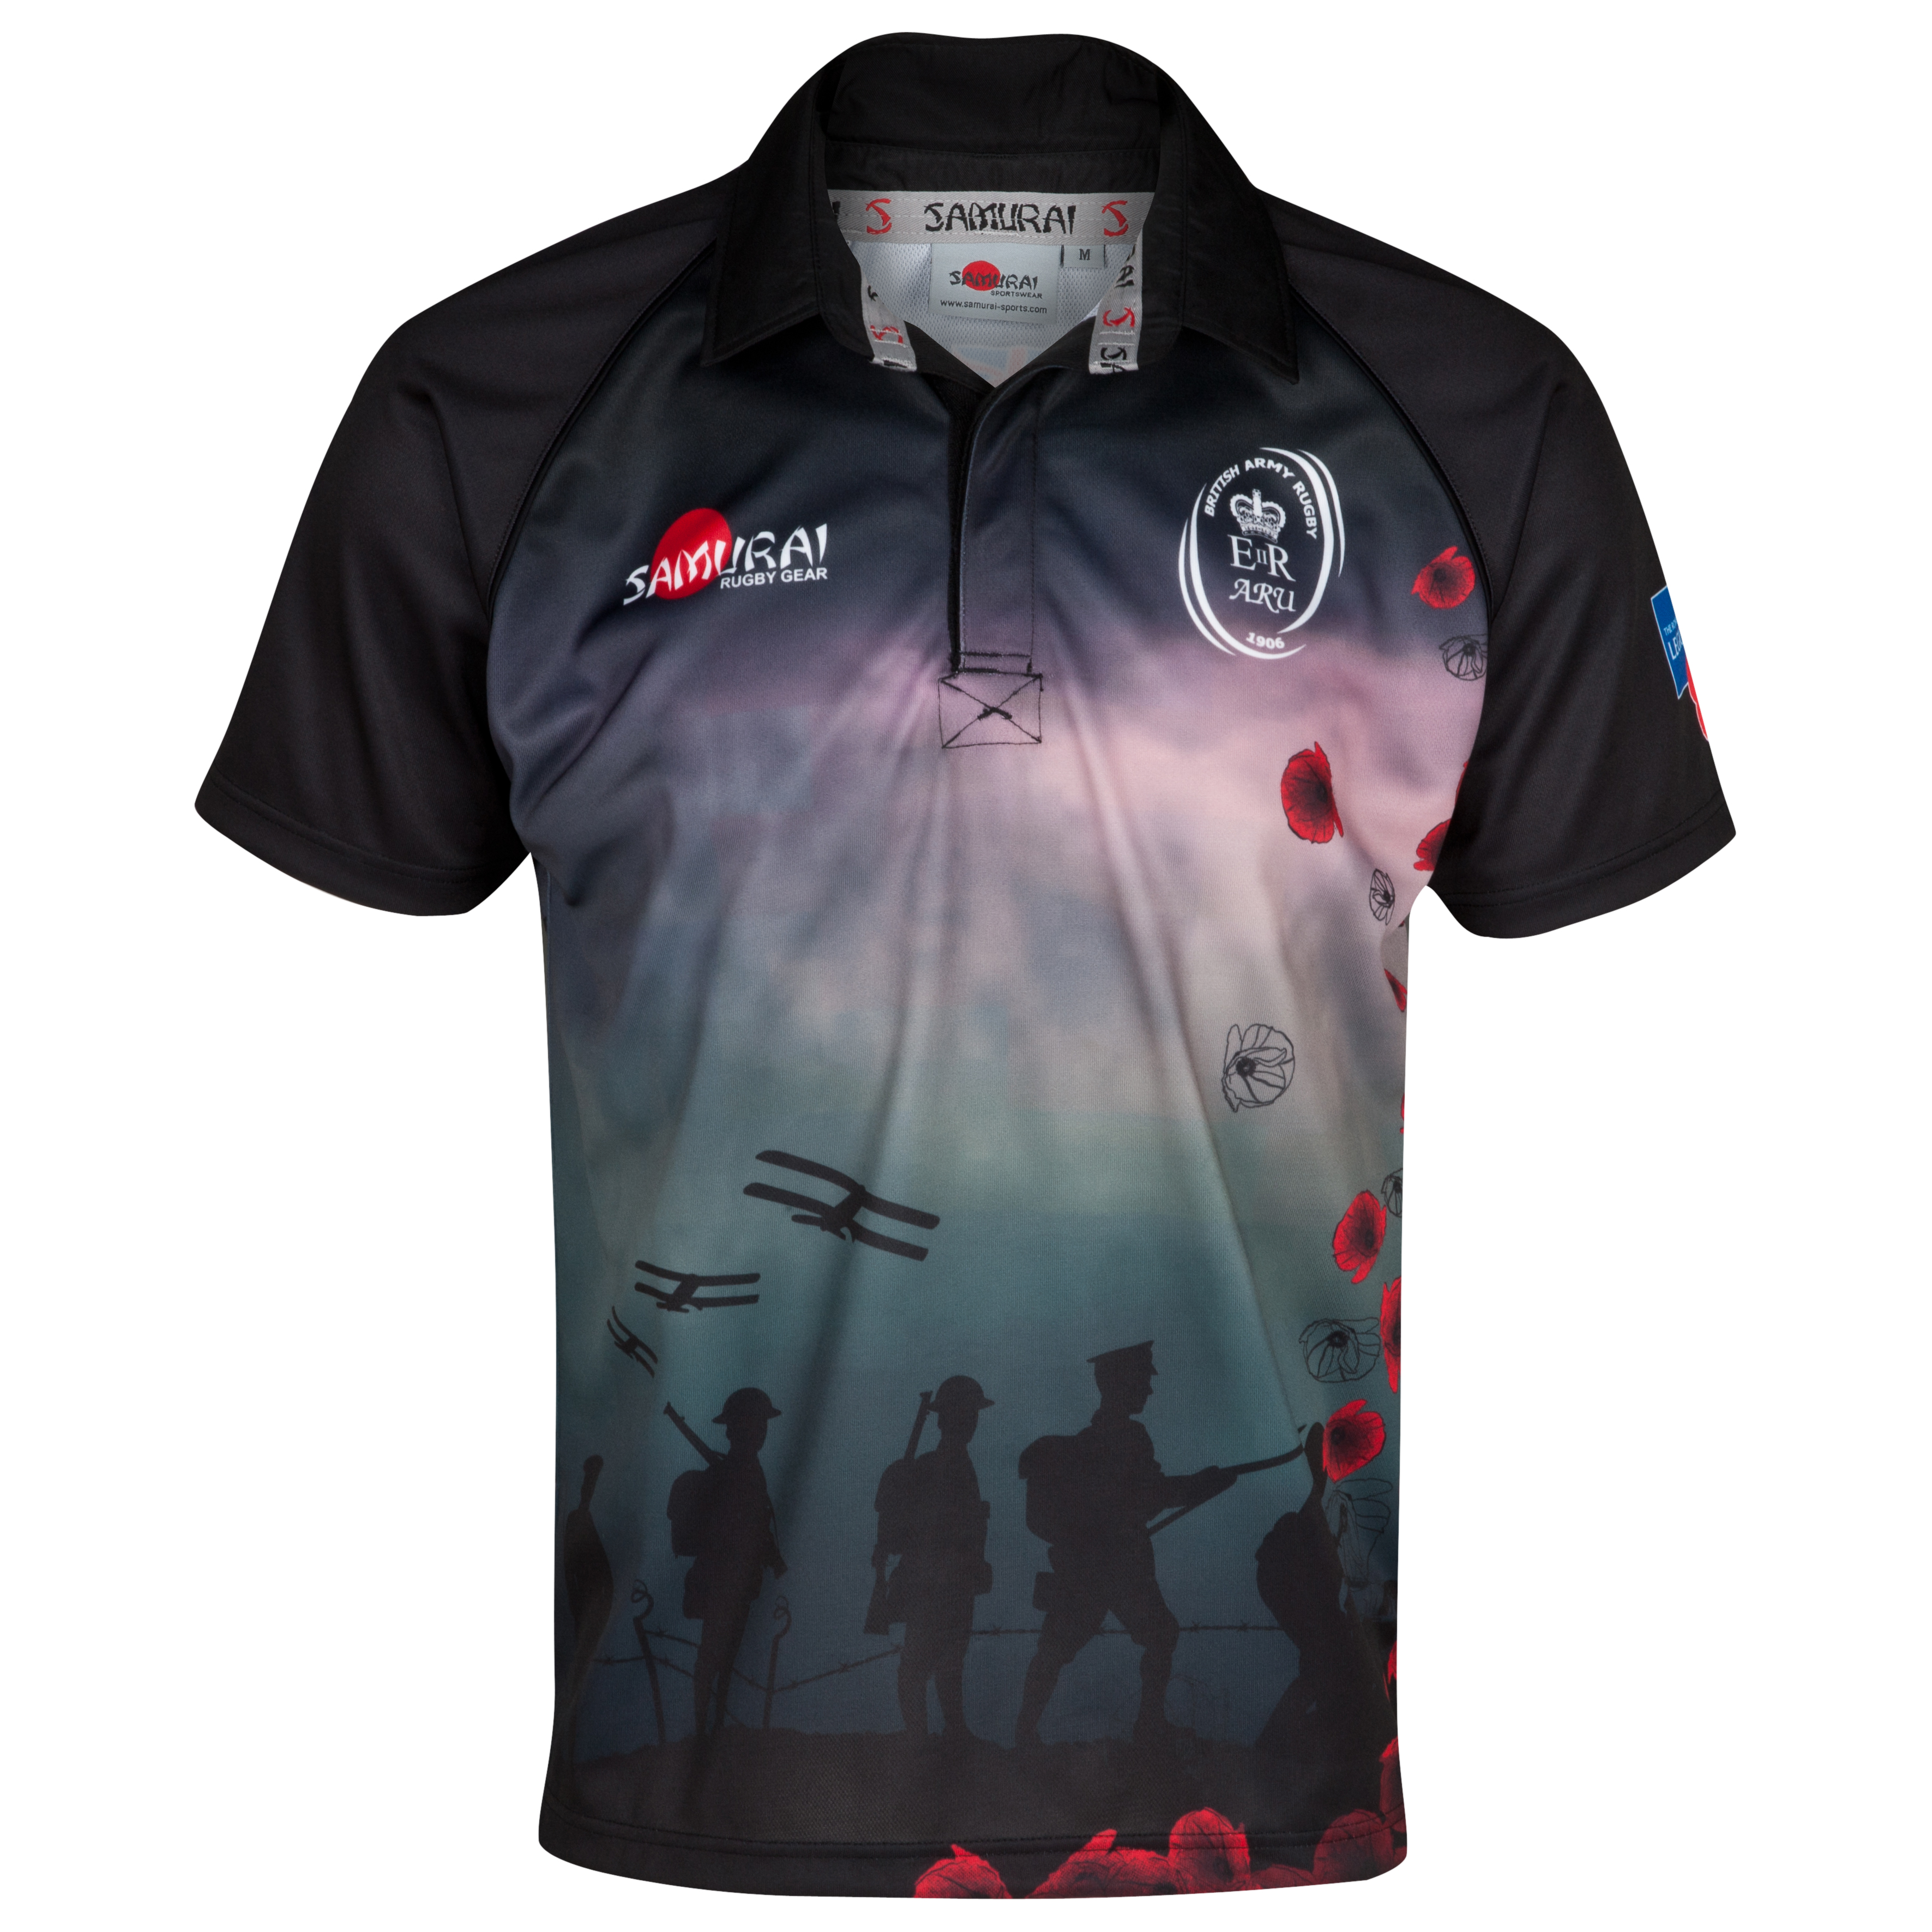 Army Rugby Union Poppy Shirt 2013 - Black/Red/Multi